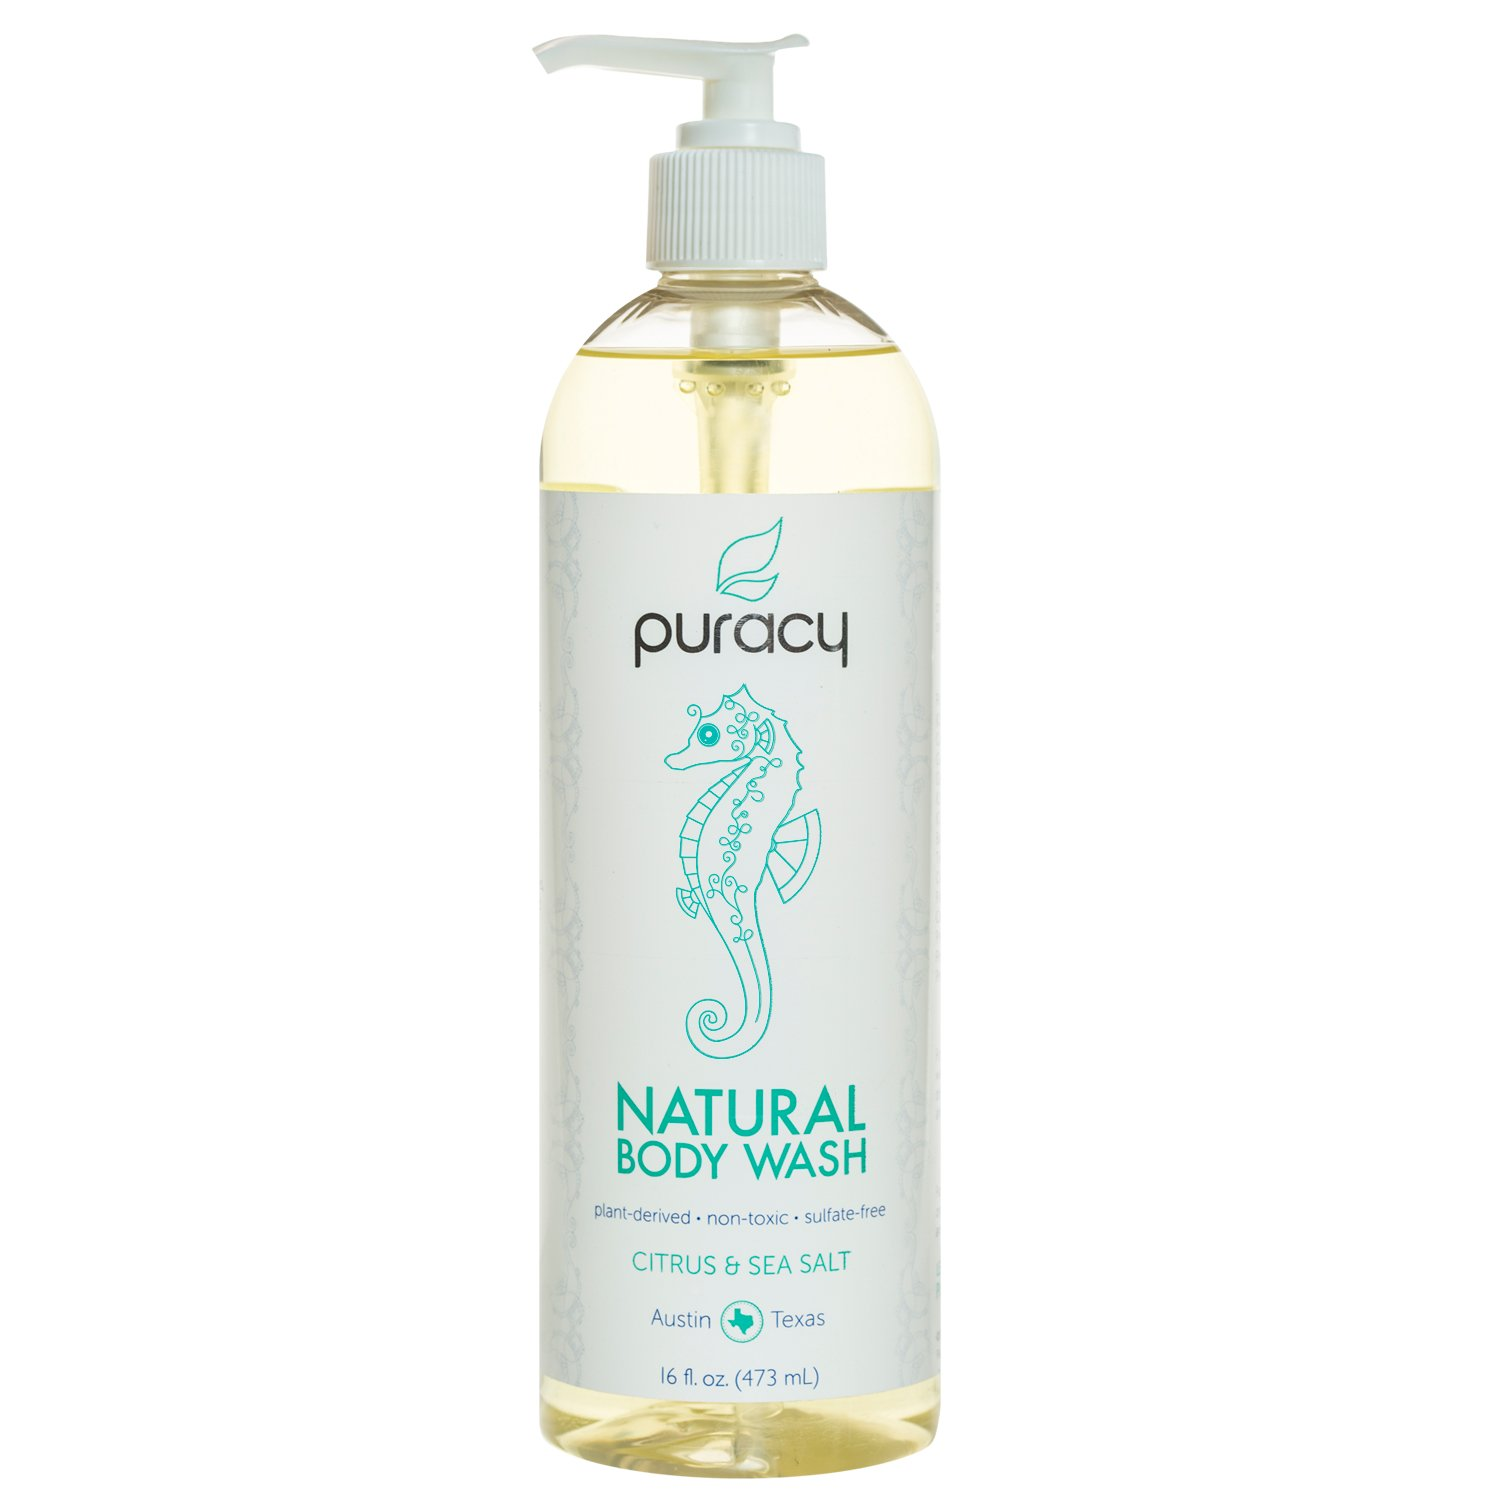 Puracy Natural Body Wash, Sulfate-Free Shower Gel and Daily Cleanser, Citrus and Sea Salt, 473 mL PBW16-1